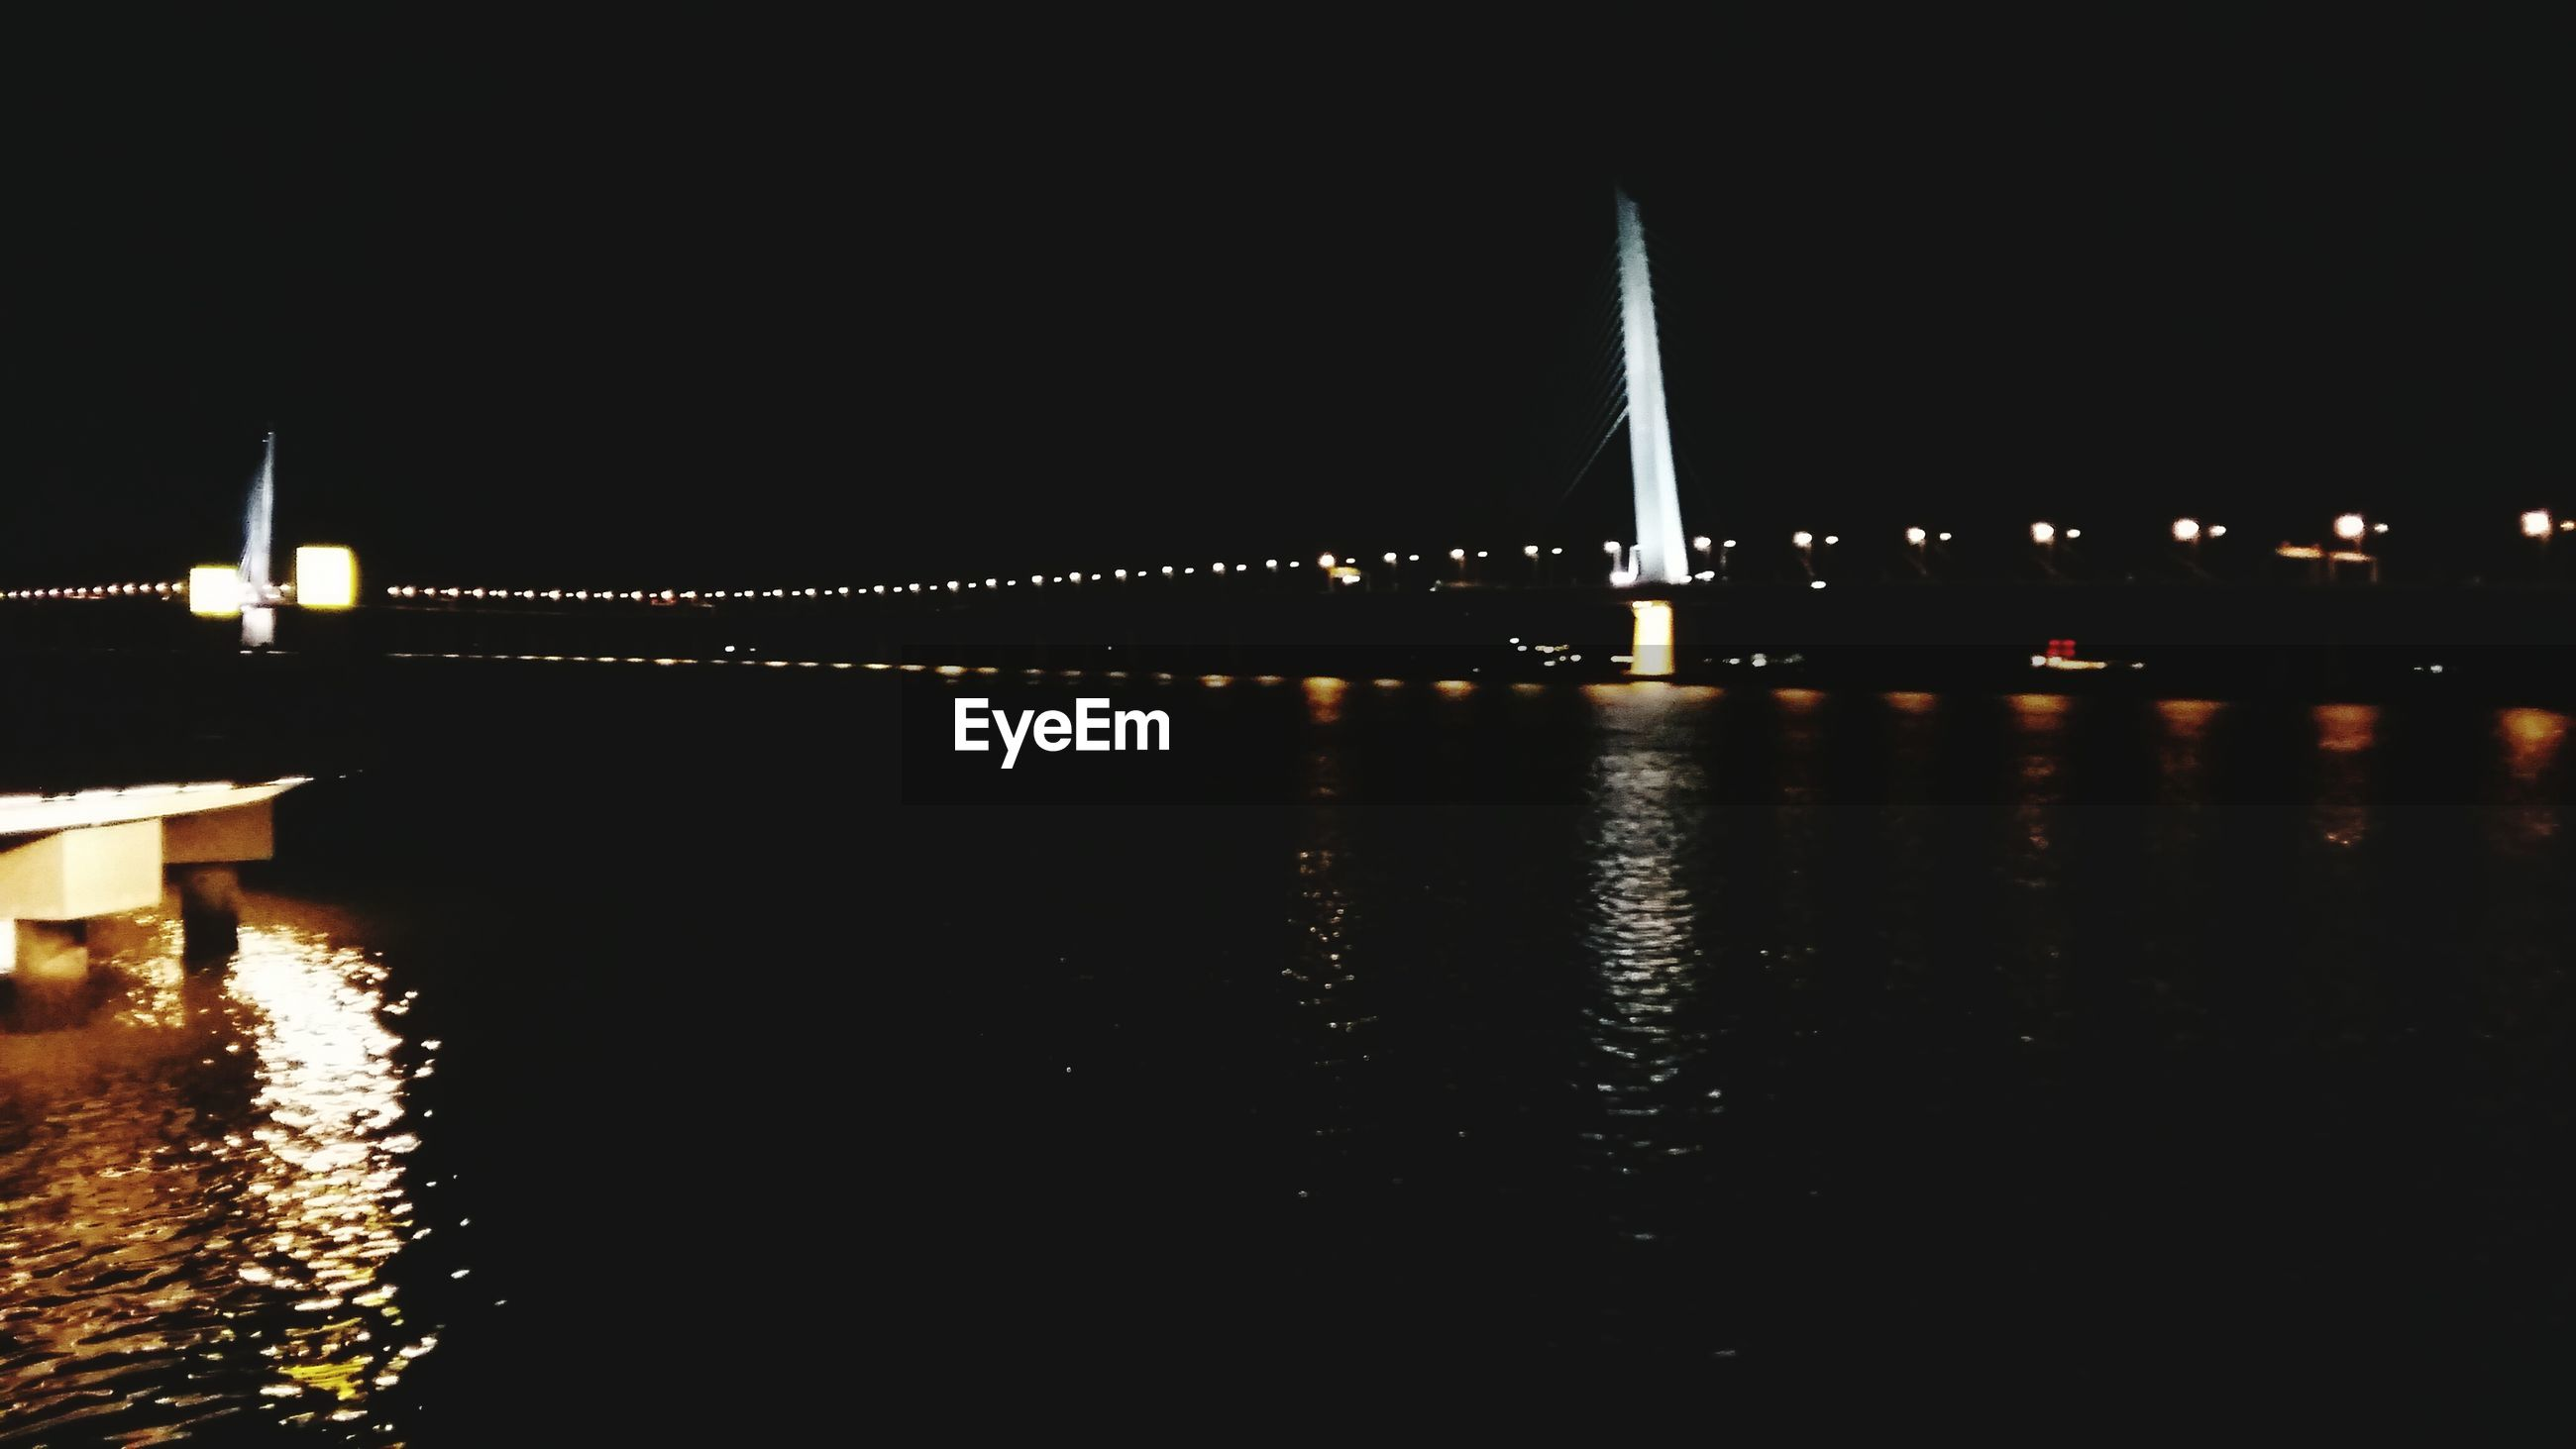 night, illuminated, architecture, built structure, water, building exterior, waterfront, river, reflection, city, clear sky, bridge - man made structure, connection, copy space, transportation, travel destinations, outdoors, no people, bridge, travel